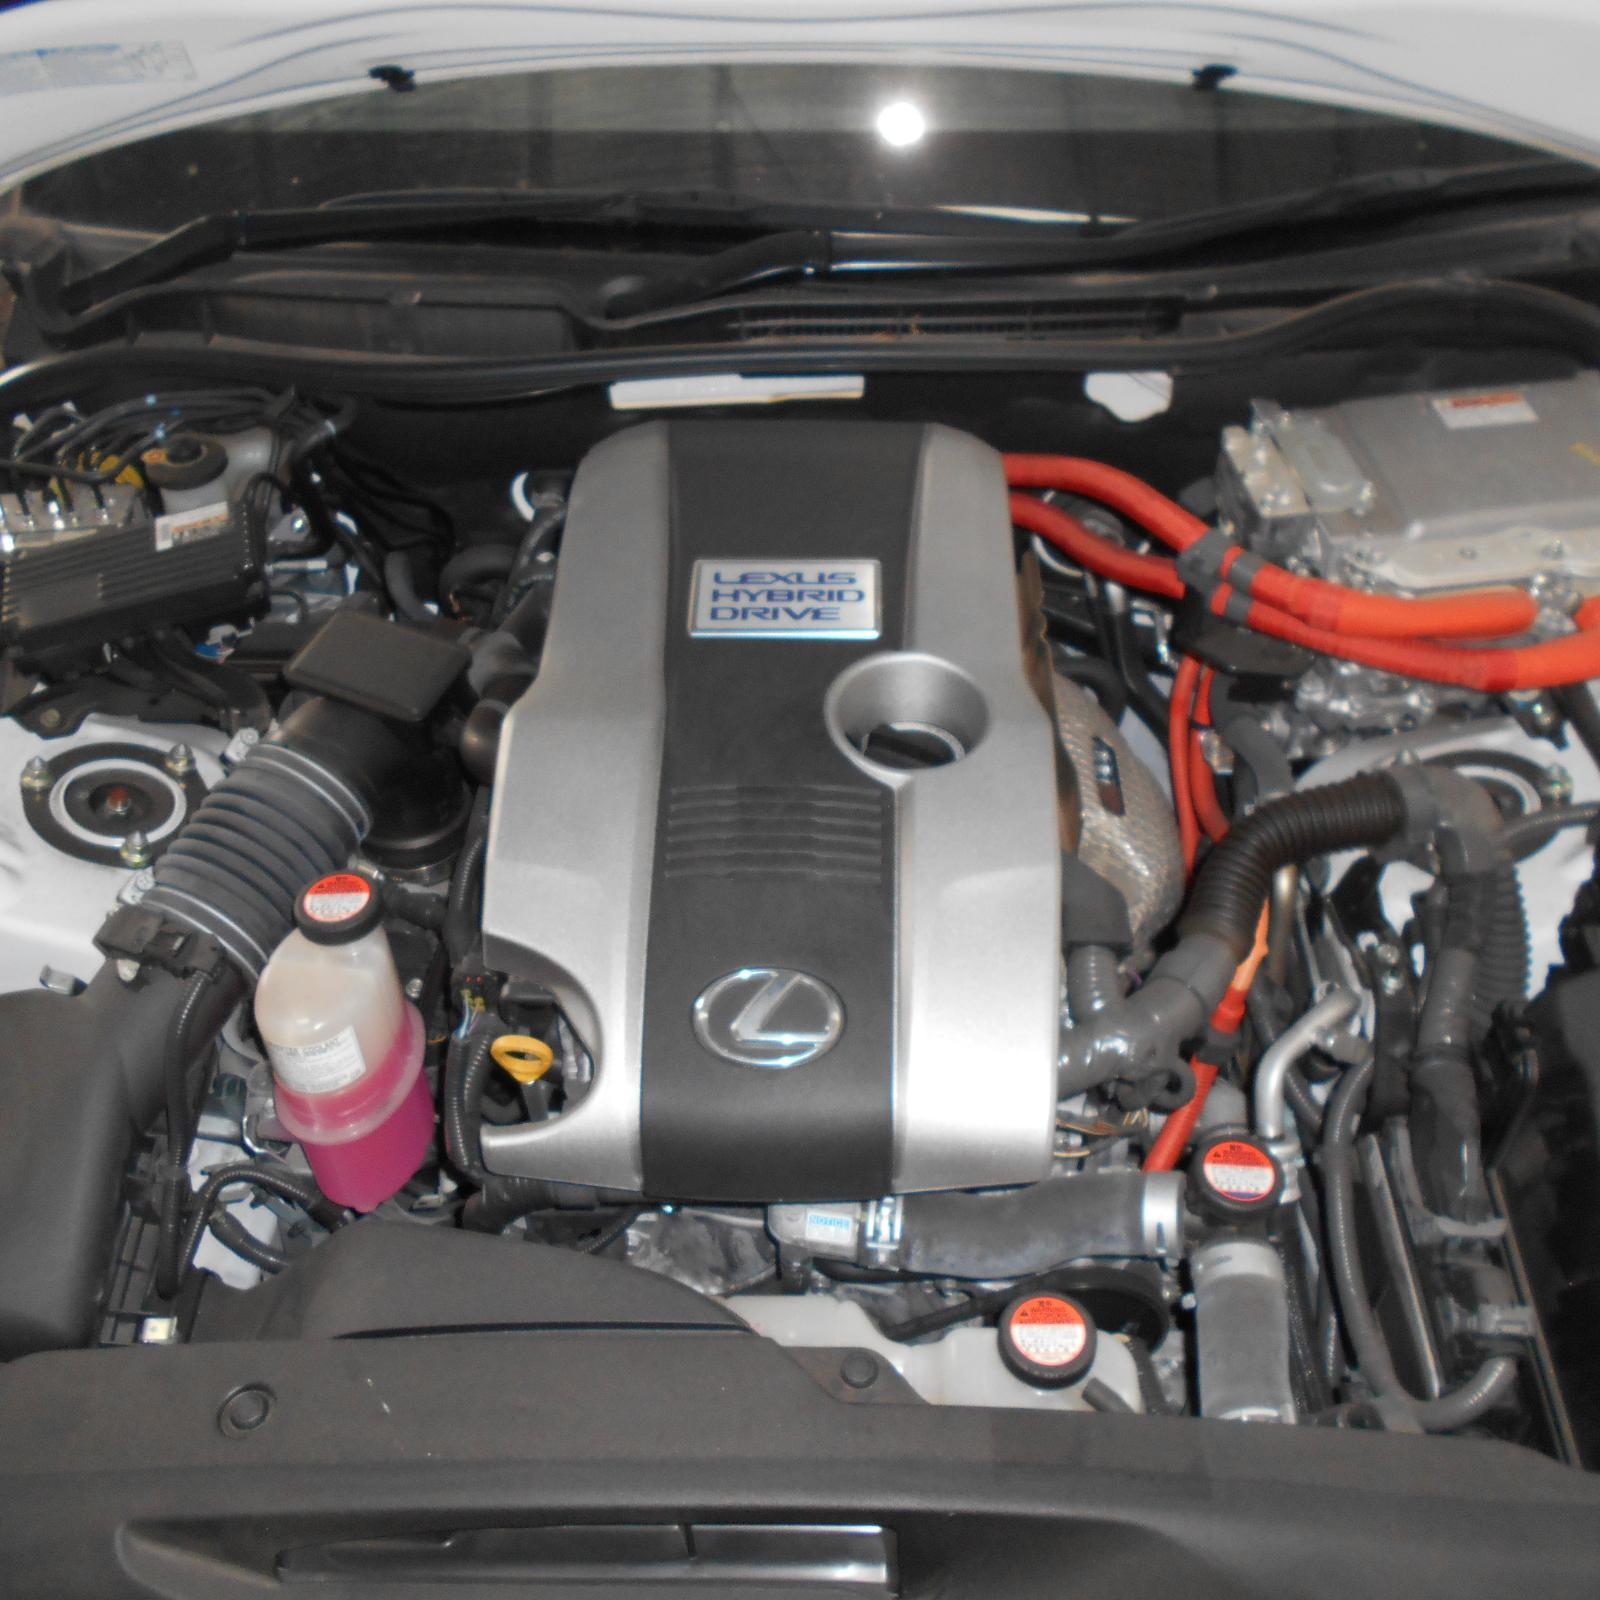 LEXUS IS SERIES, Engine, IS300h, PETROL, 2.5, 2AR-FSE, XE30, 04/13-